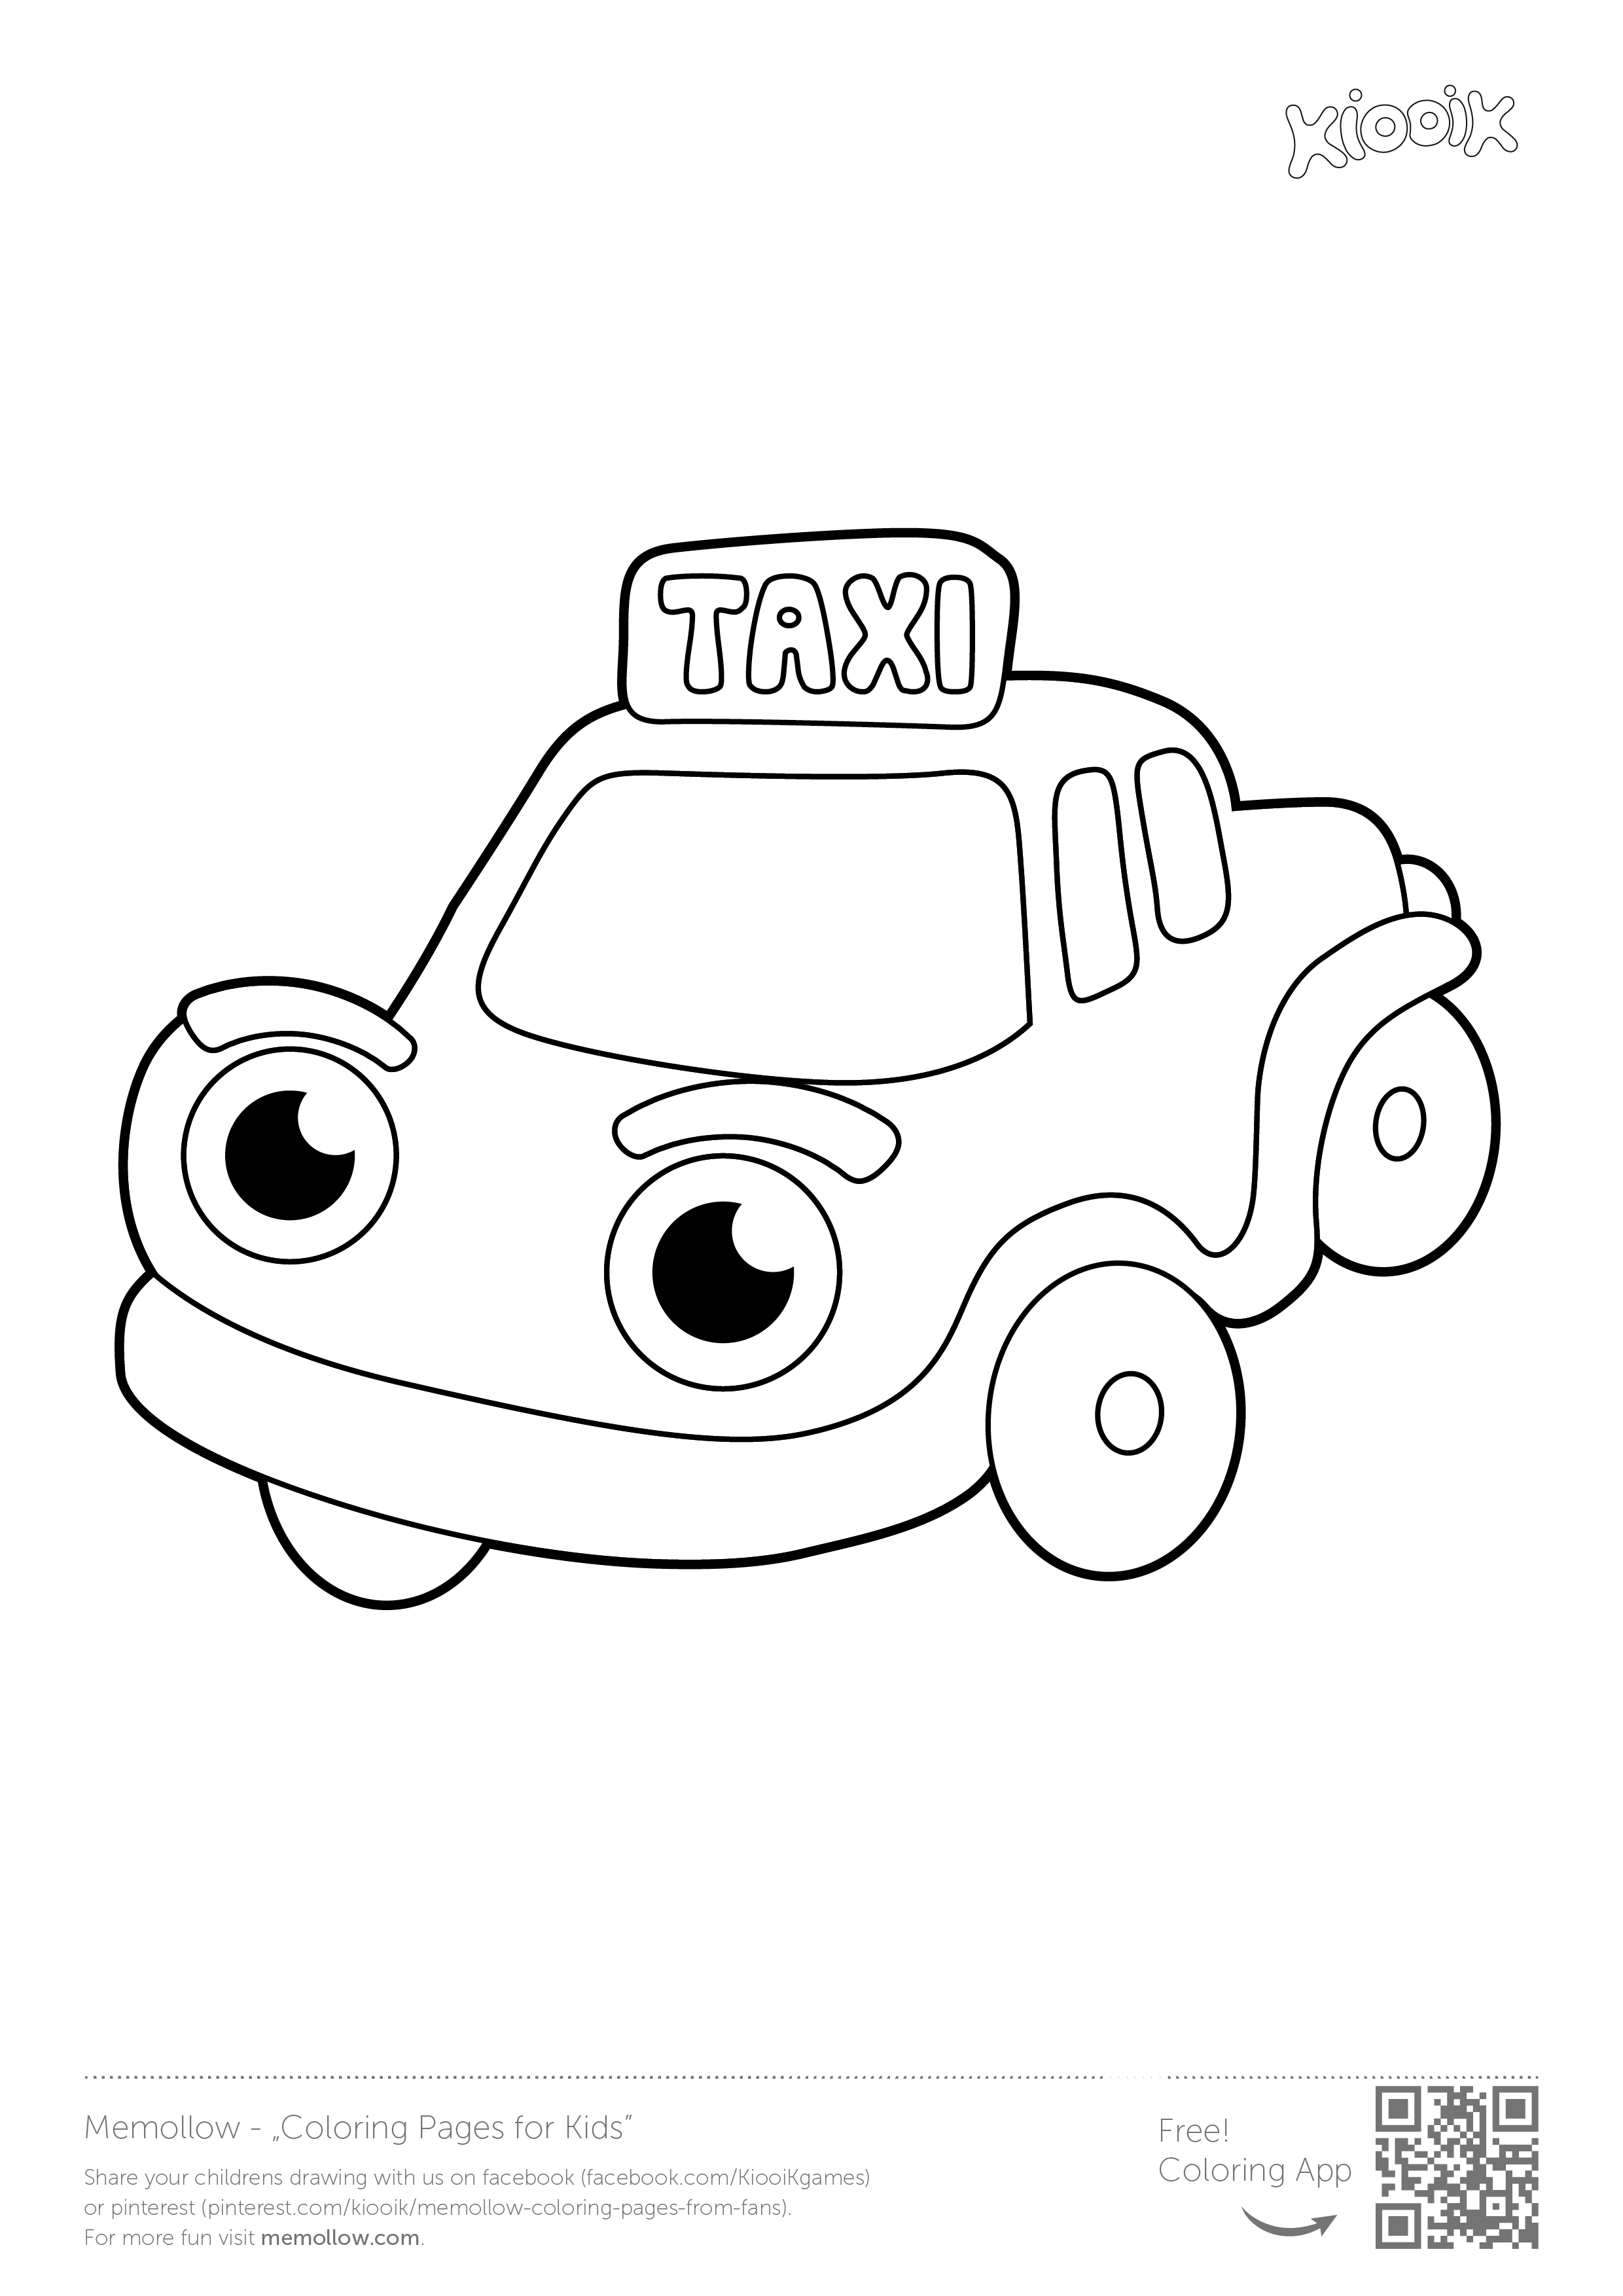 Taxi Memollow To Print Coloring Pages For Kids